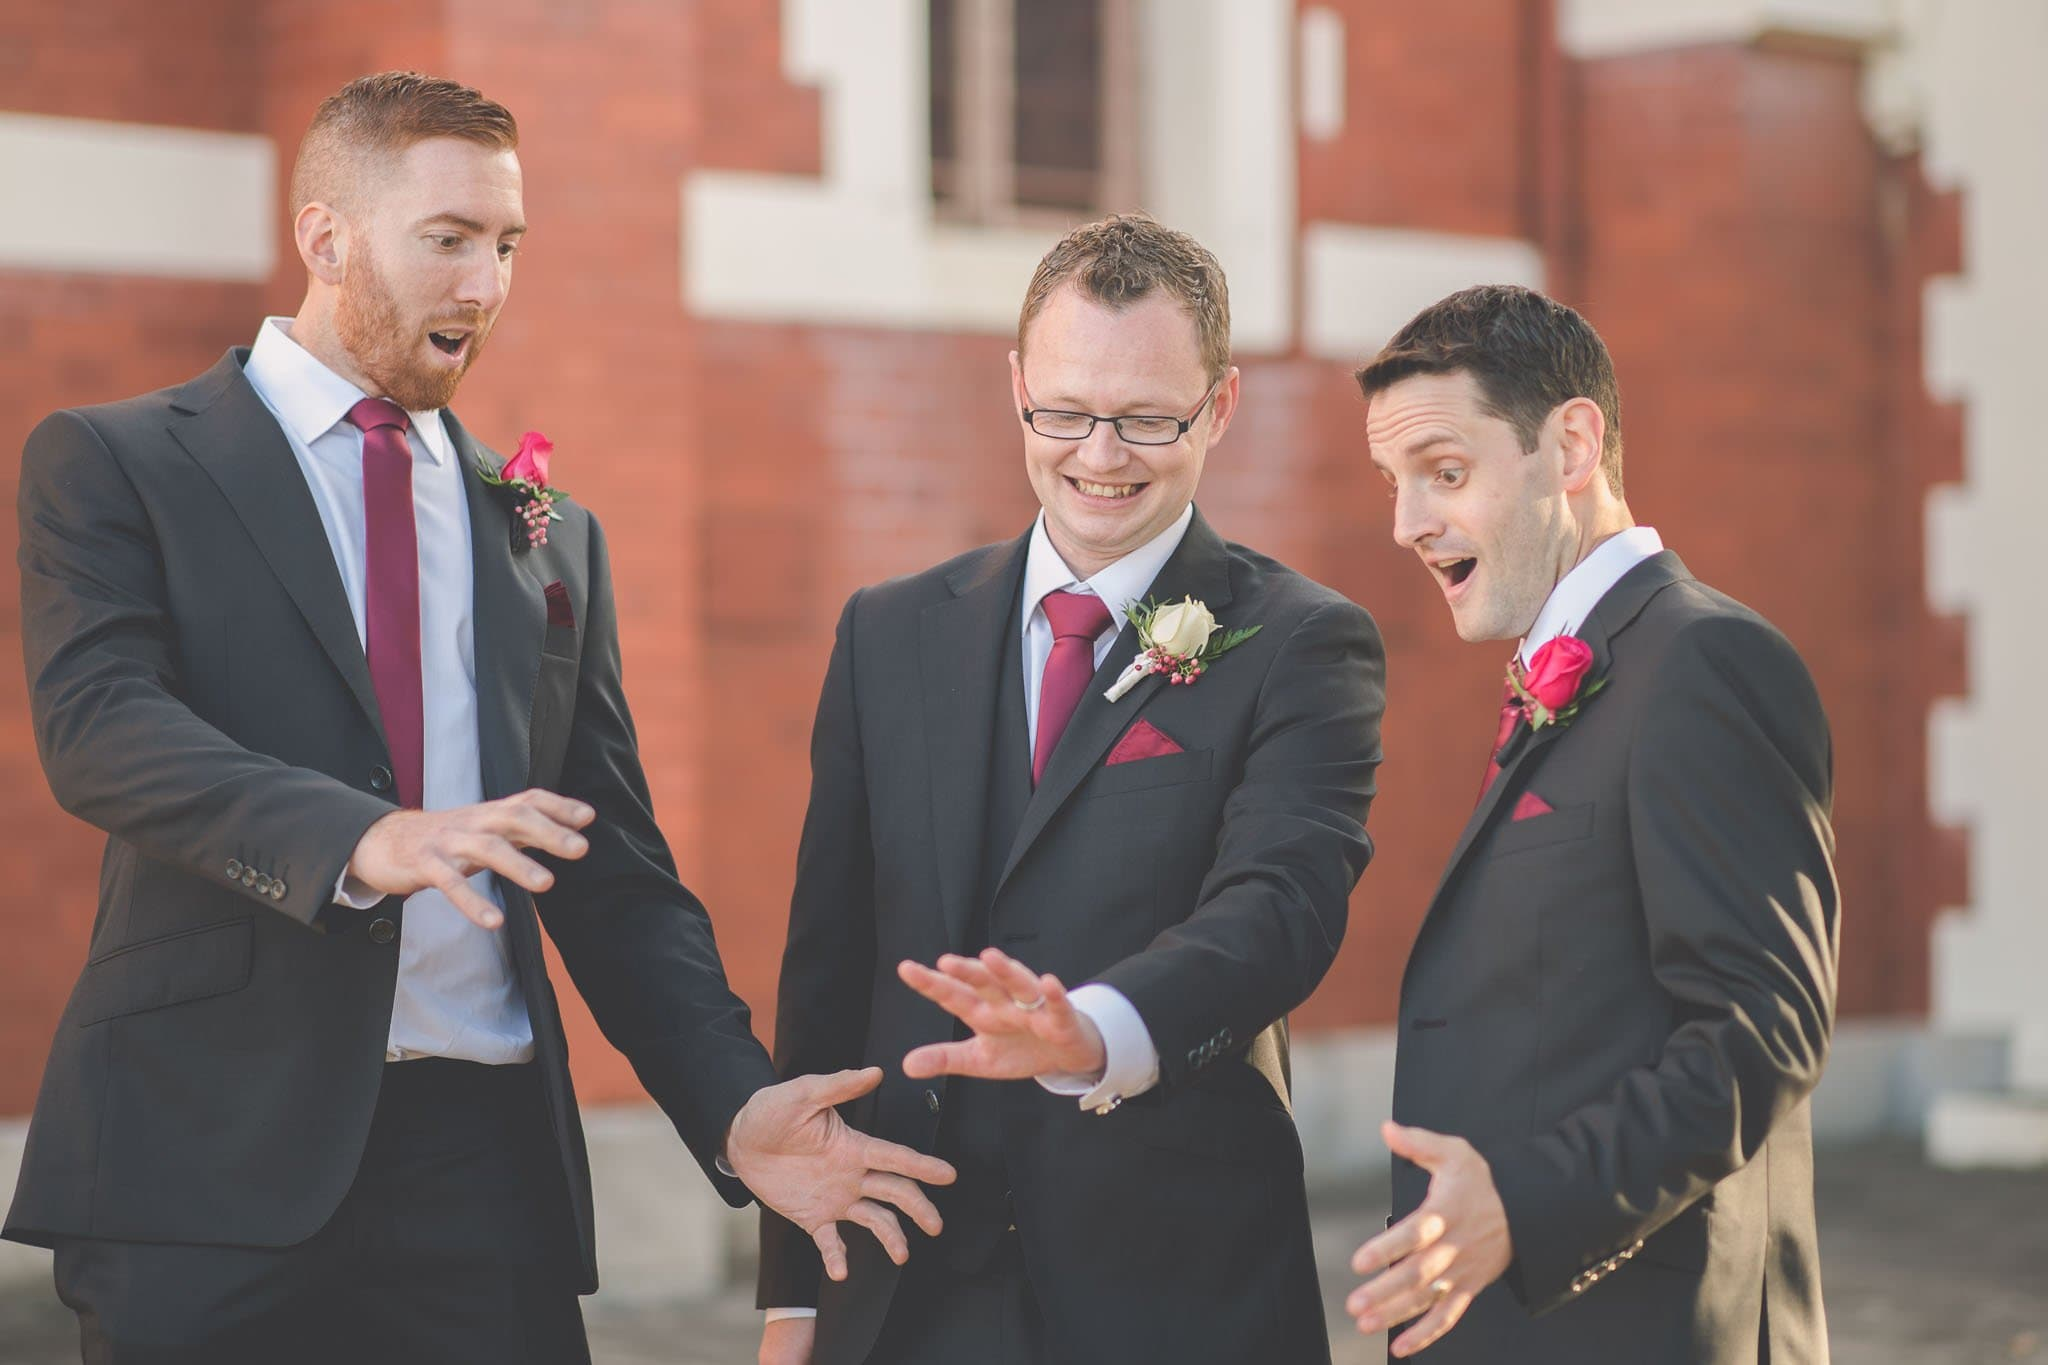 The groom and groomsmen mock a popular wedding photo taken by a lot of brides.